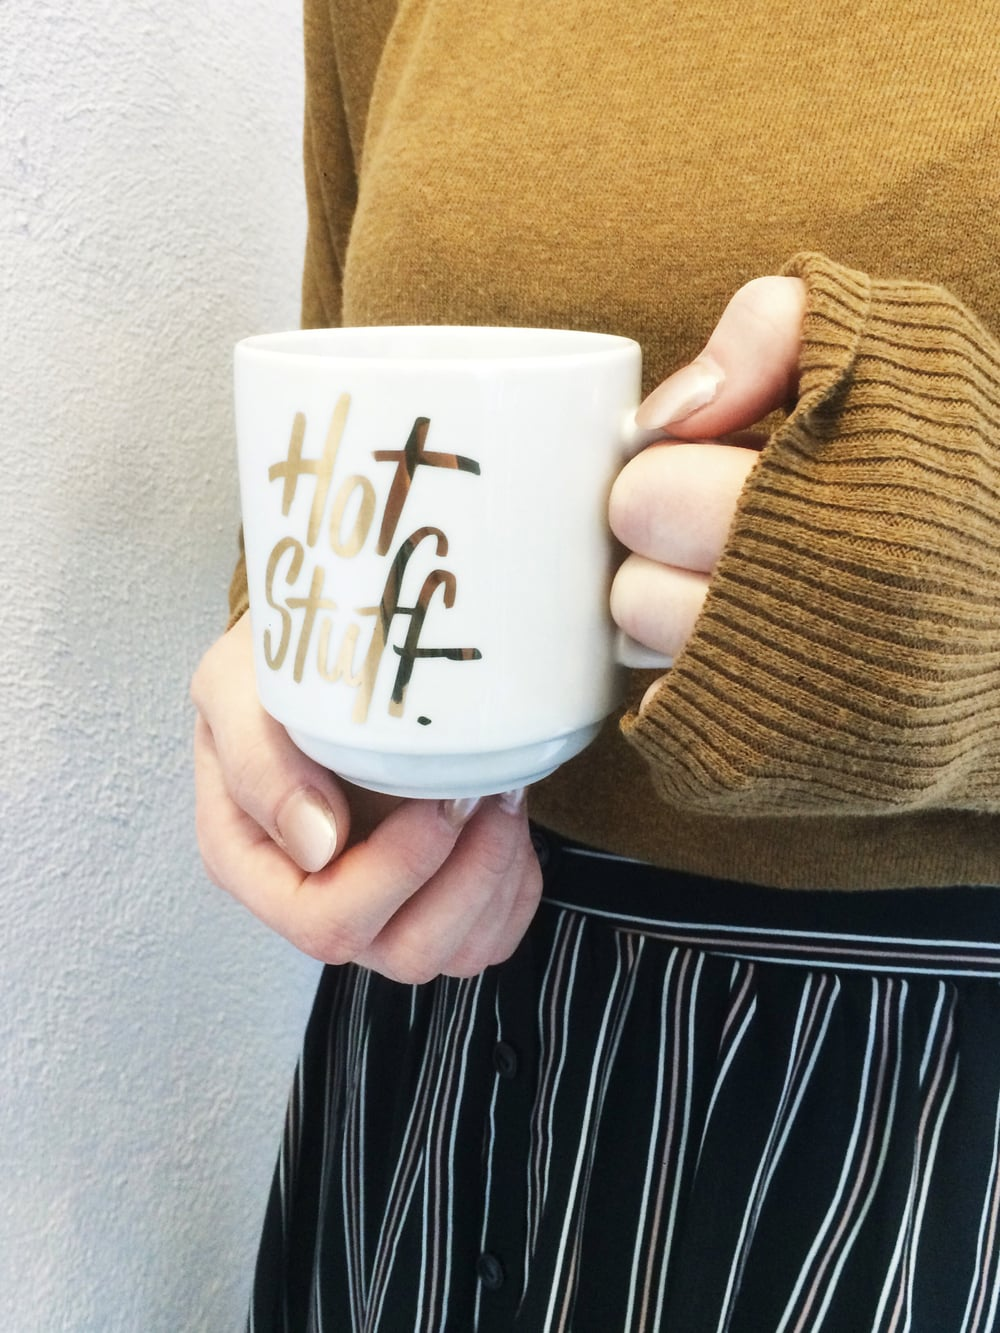 Shop this mug here!